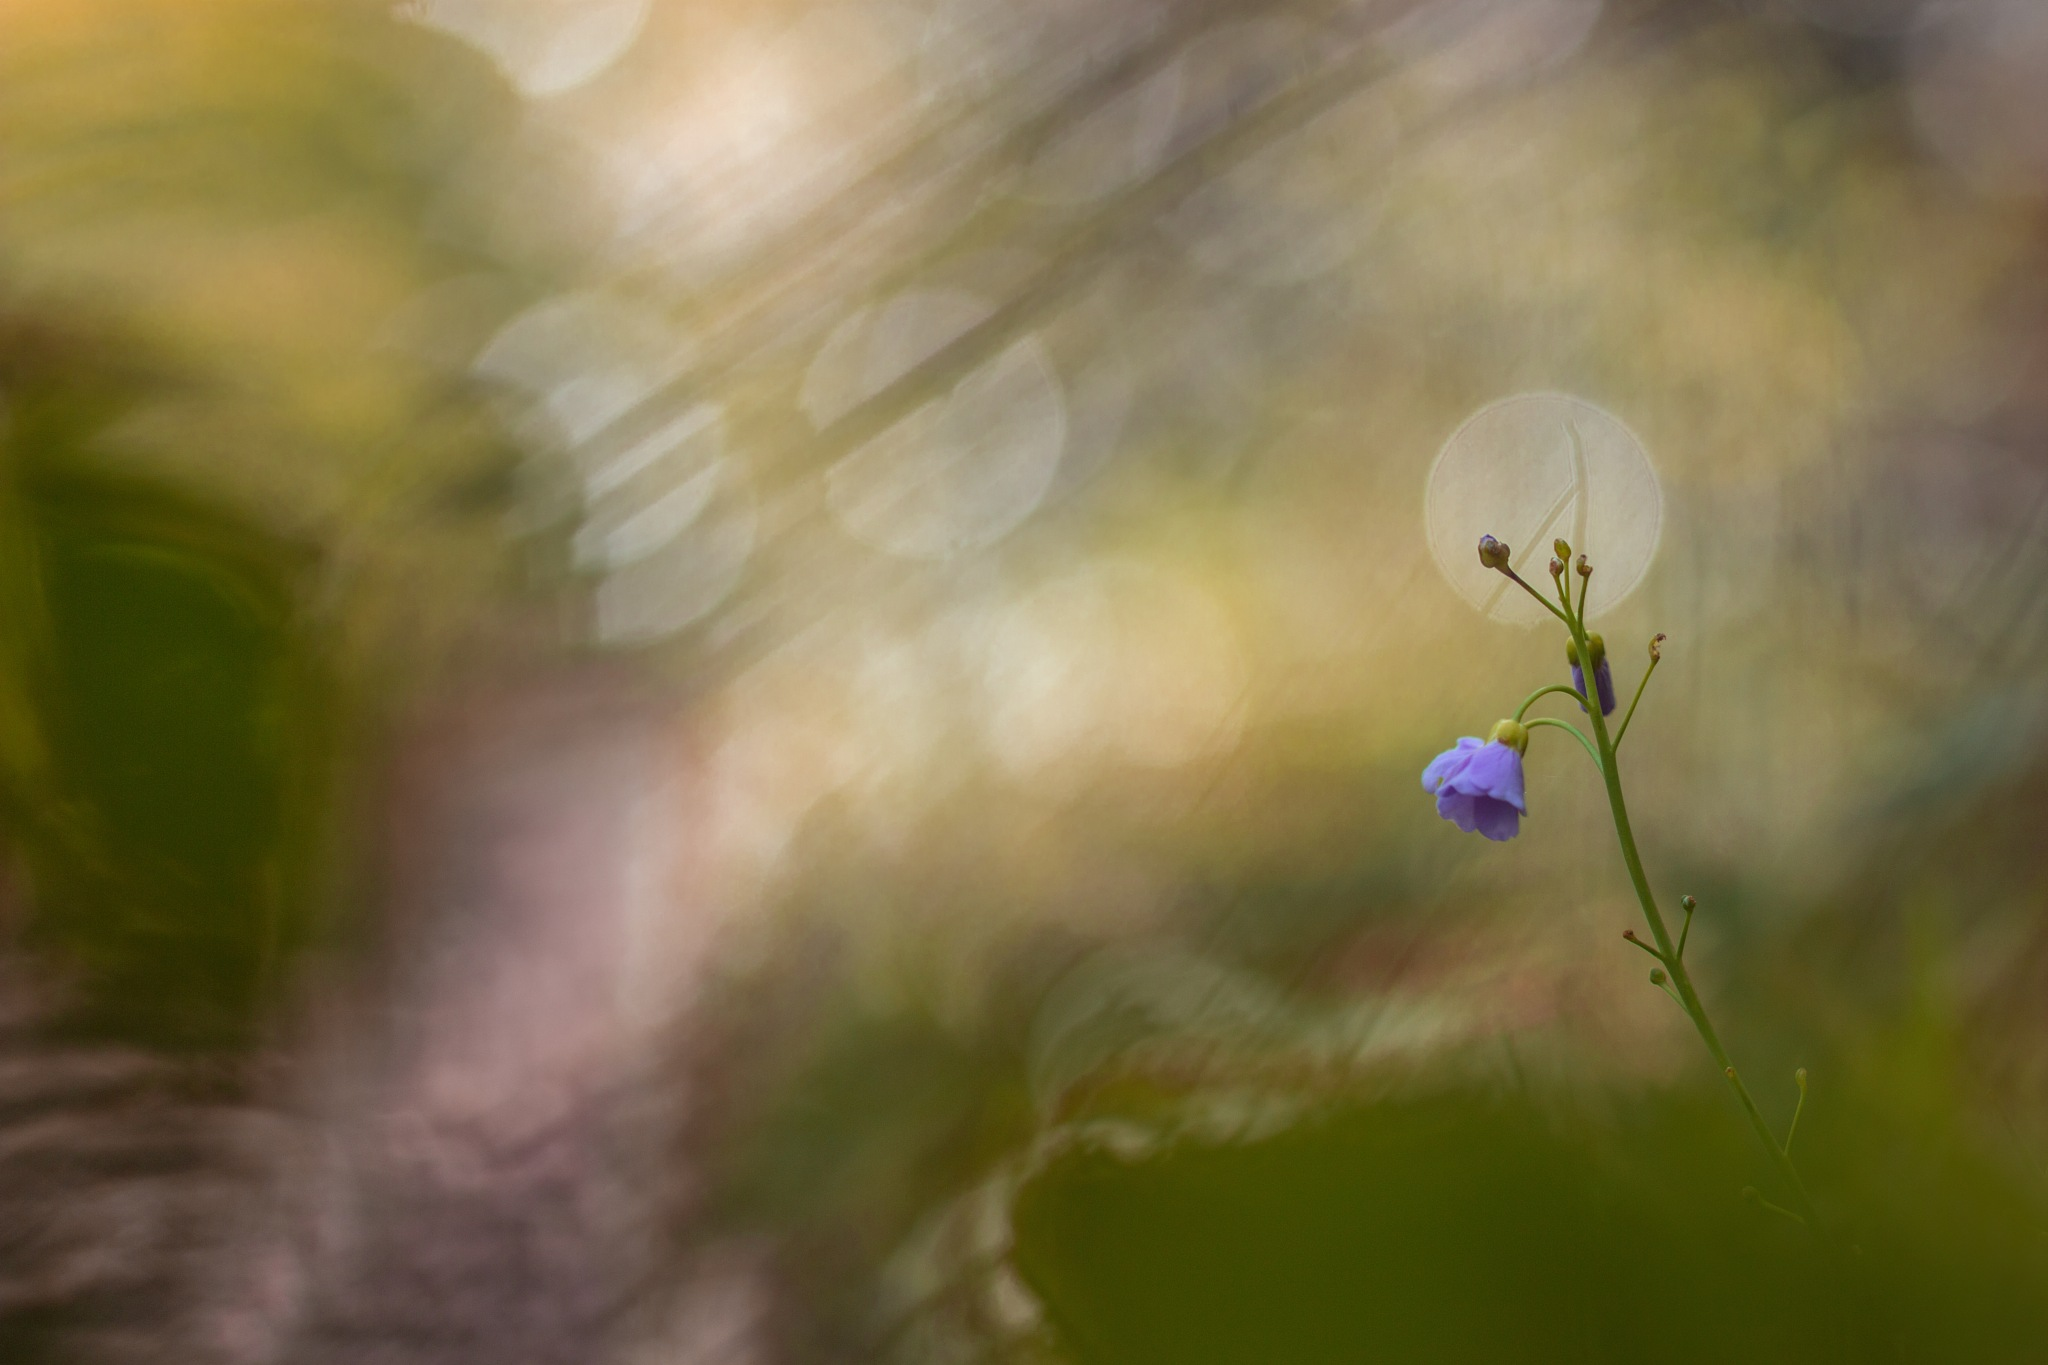 Flower by Yves Droeven